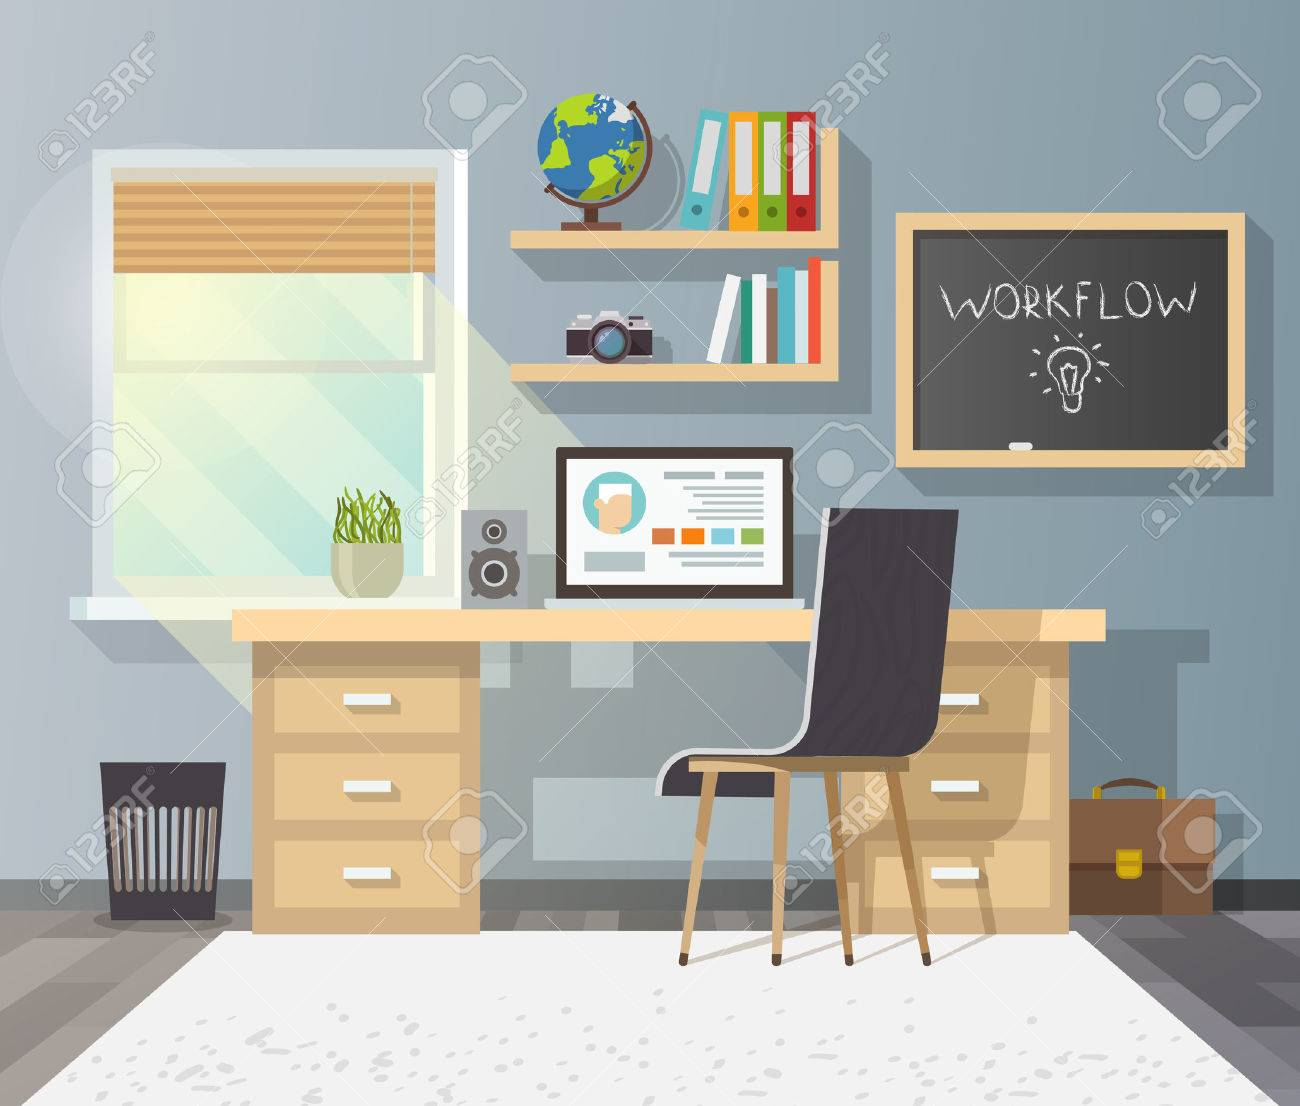 Workplace in sunny room. Stylish and modern interior.Quality design illustration, elements and concept. Flat style.2 - 50303892